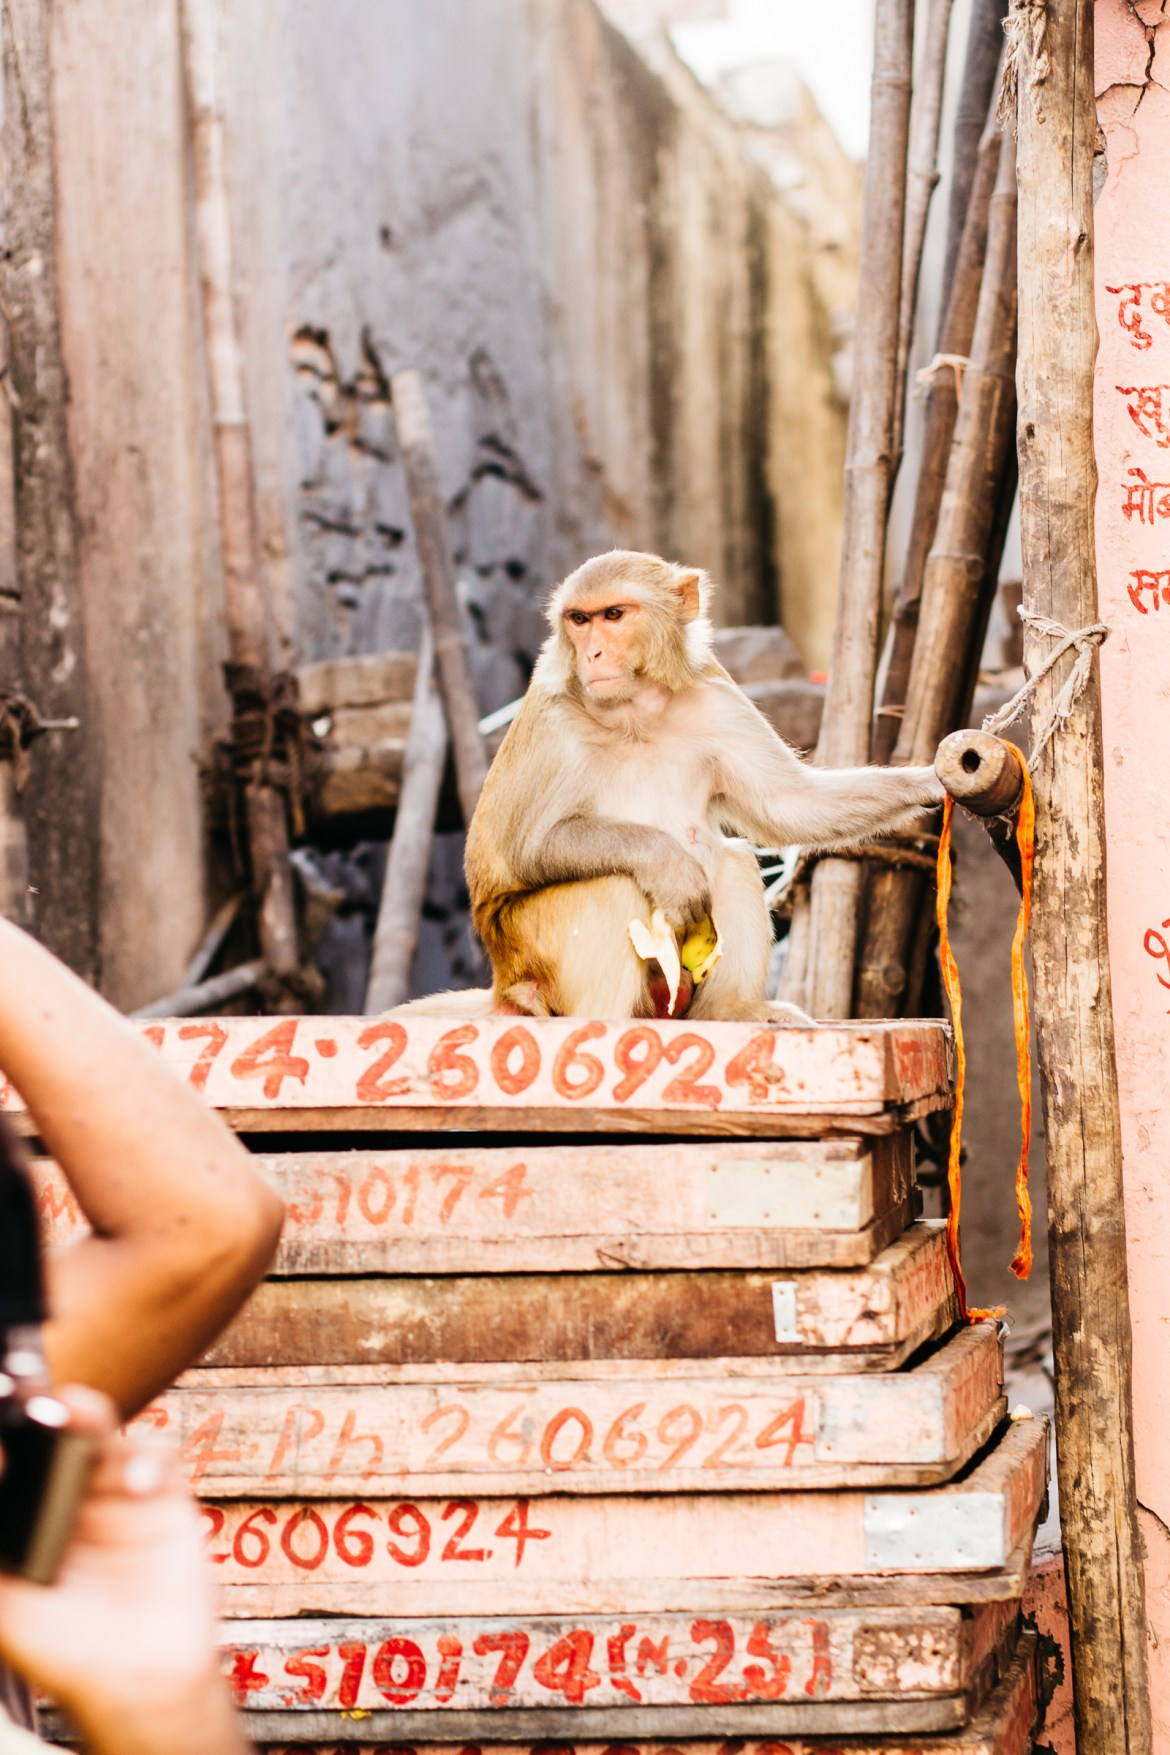 jaipur, india, anchal project, the kentucky gent, india travel blog